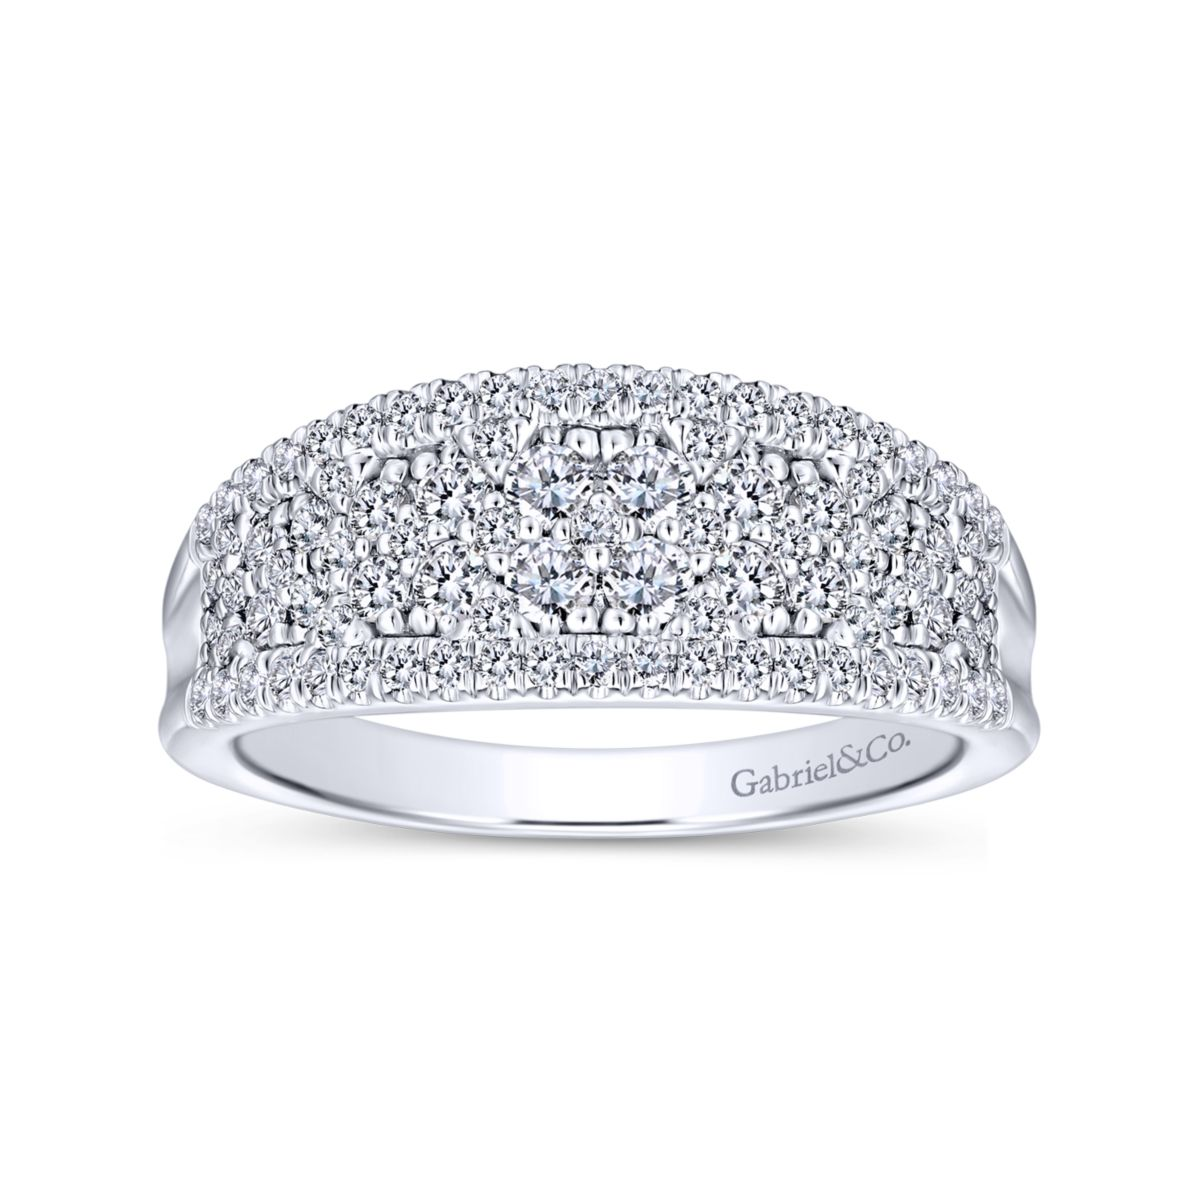 Curved Pave Mixed Diamonds Ring in 14k White Gold - Bottom View